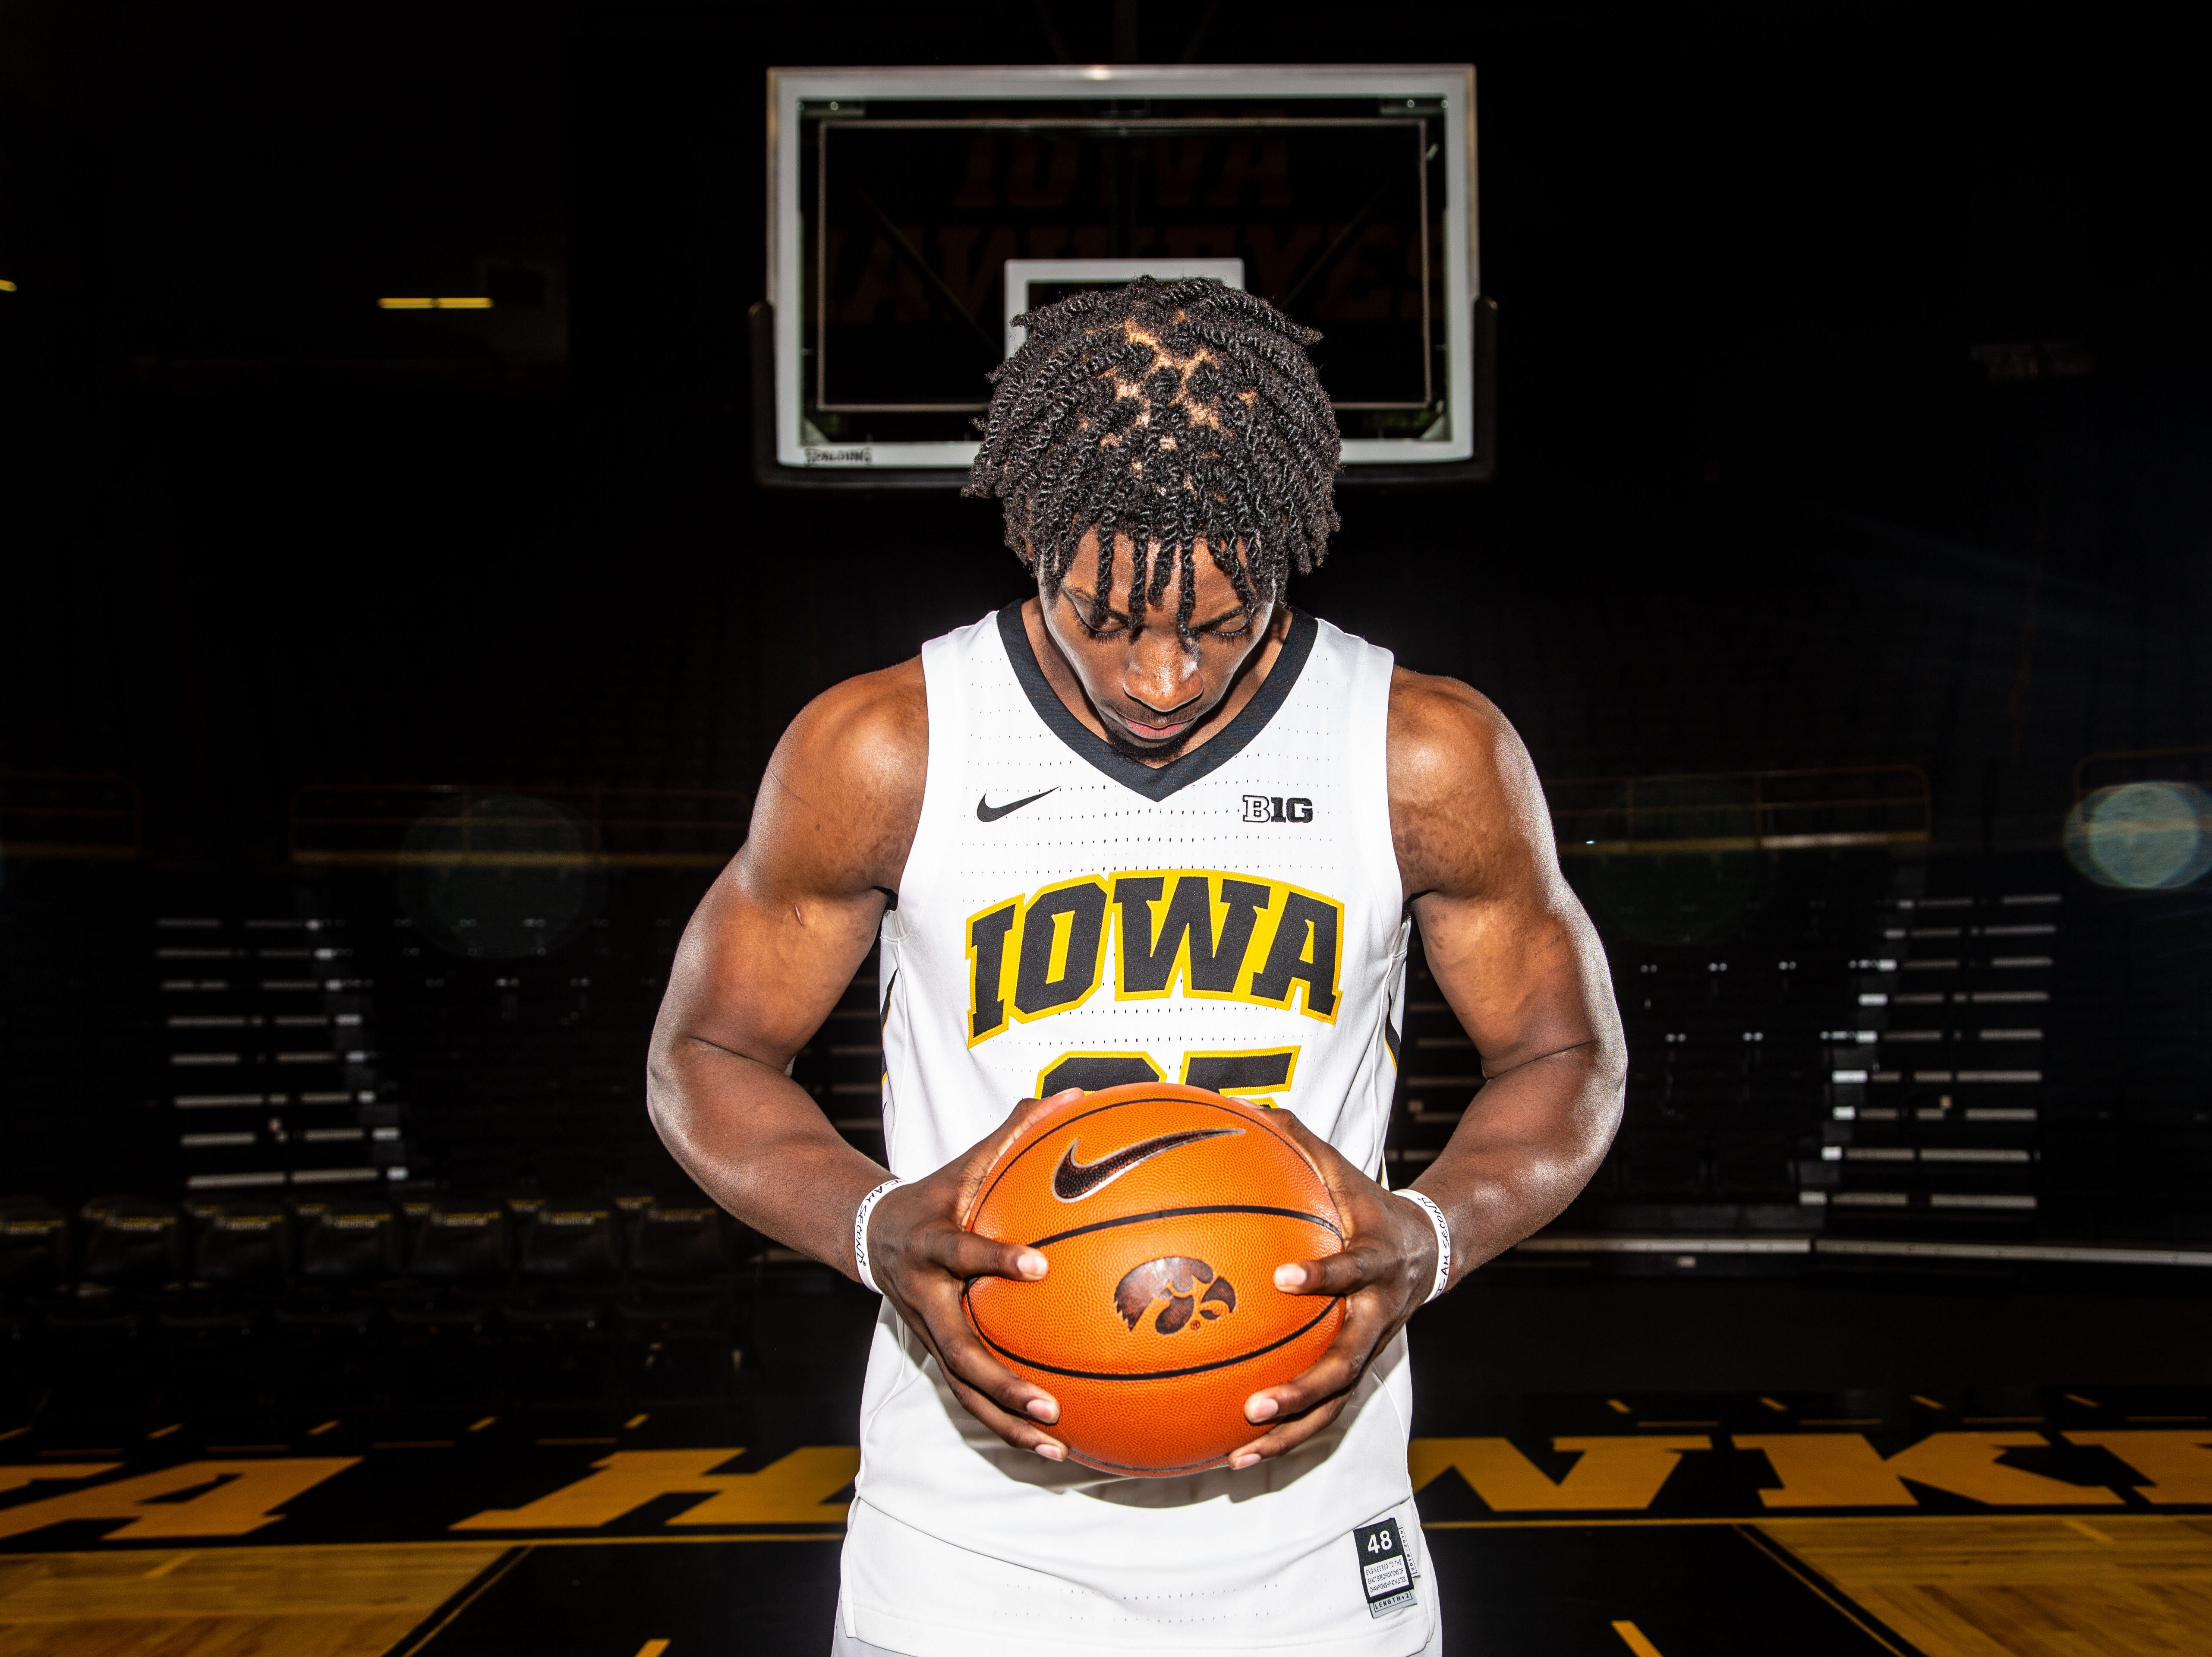 Iowa forward Tyler Cook poses for a photo during Hawkeye media day at Carver Hawkeye ArenaMonday, Oct. 8, 2018.